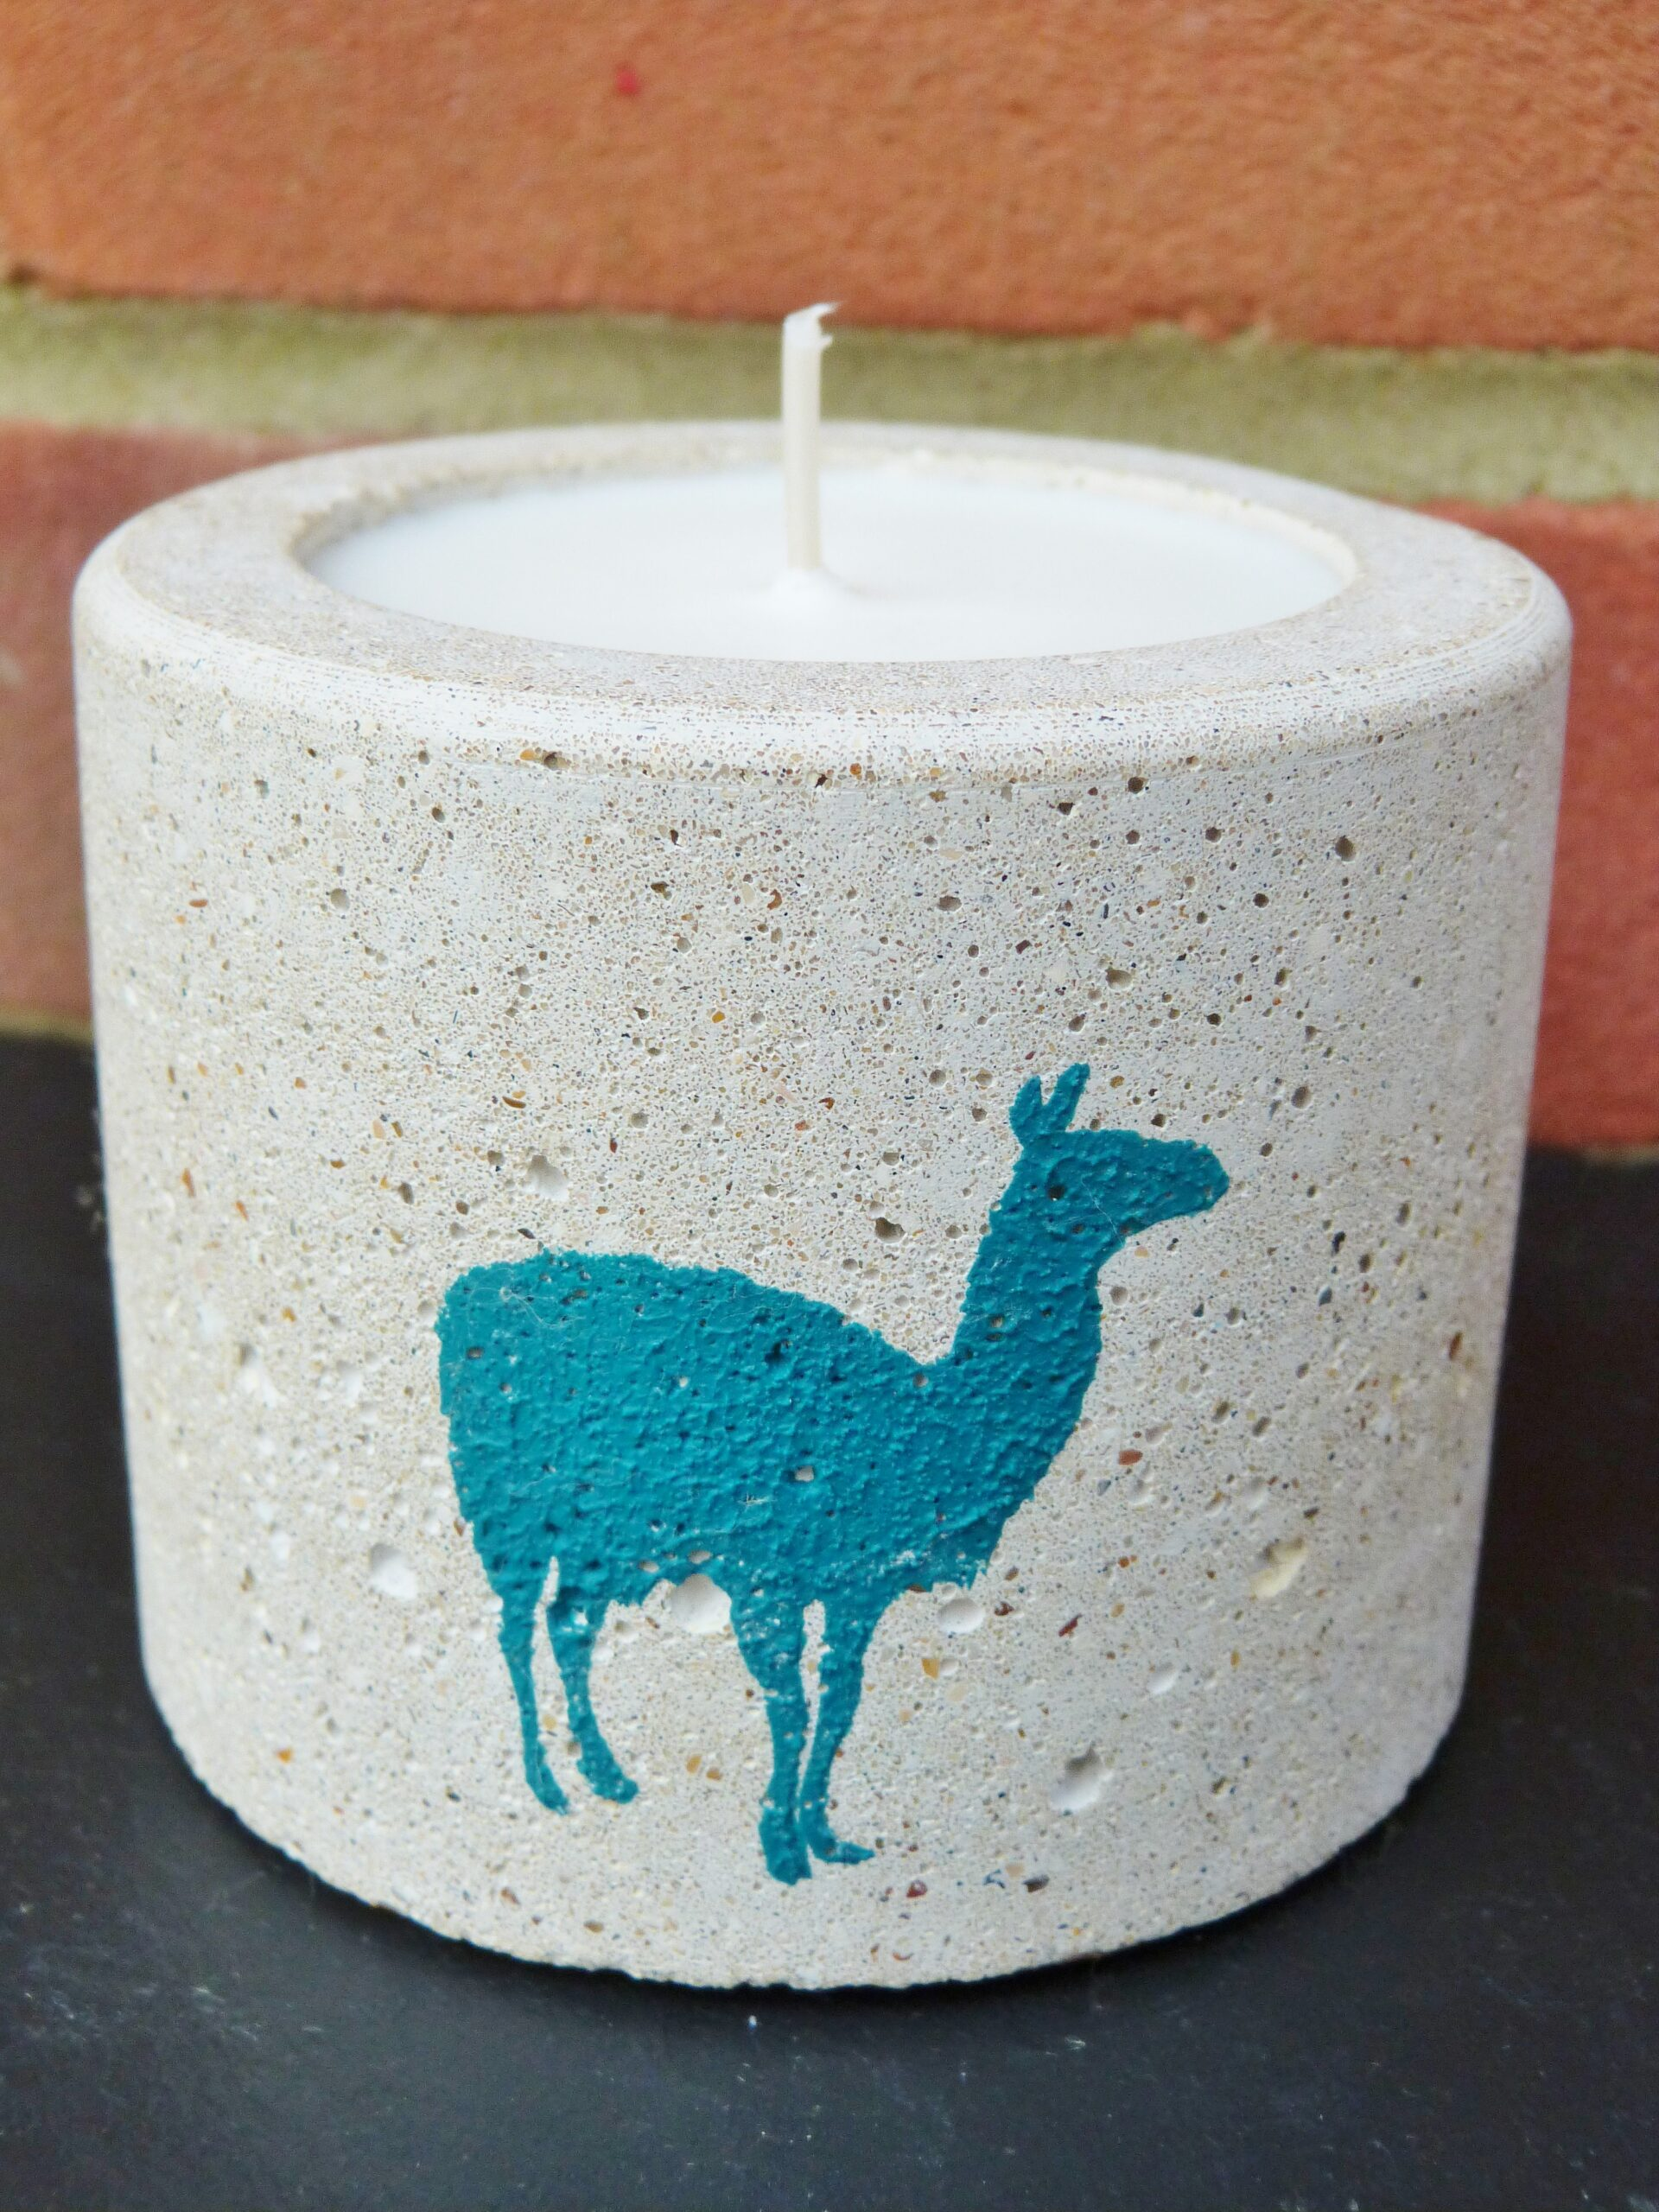 concrete candle soy wax teal llama motif